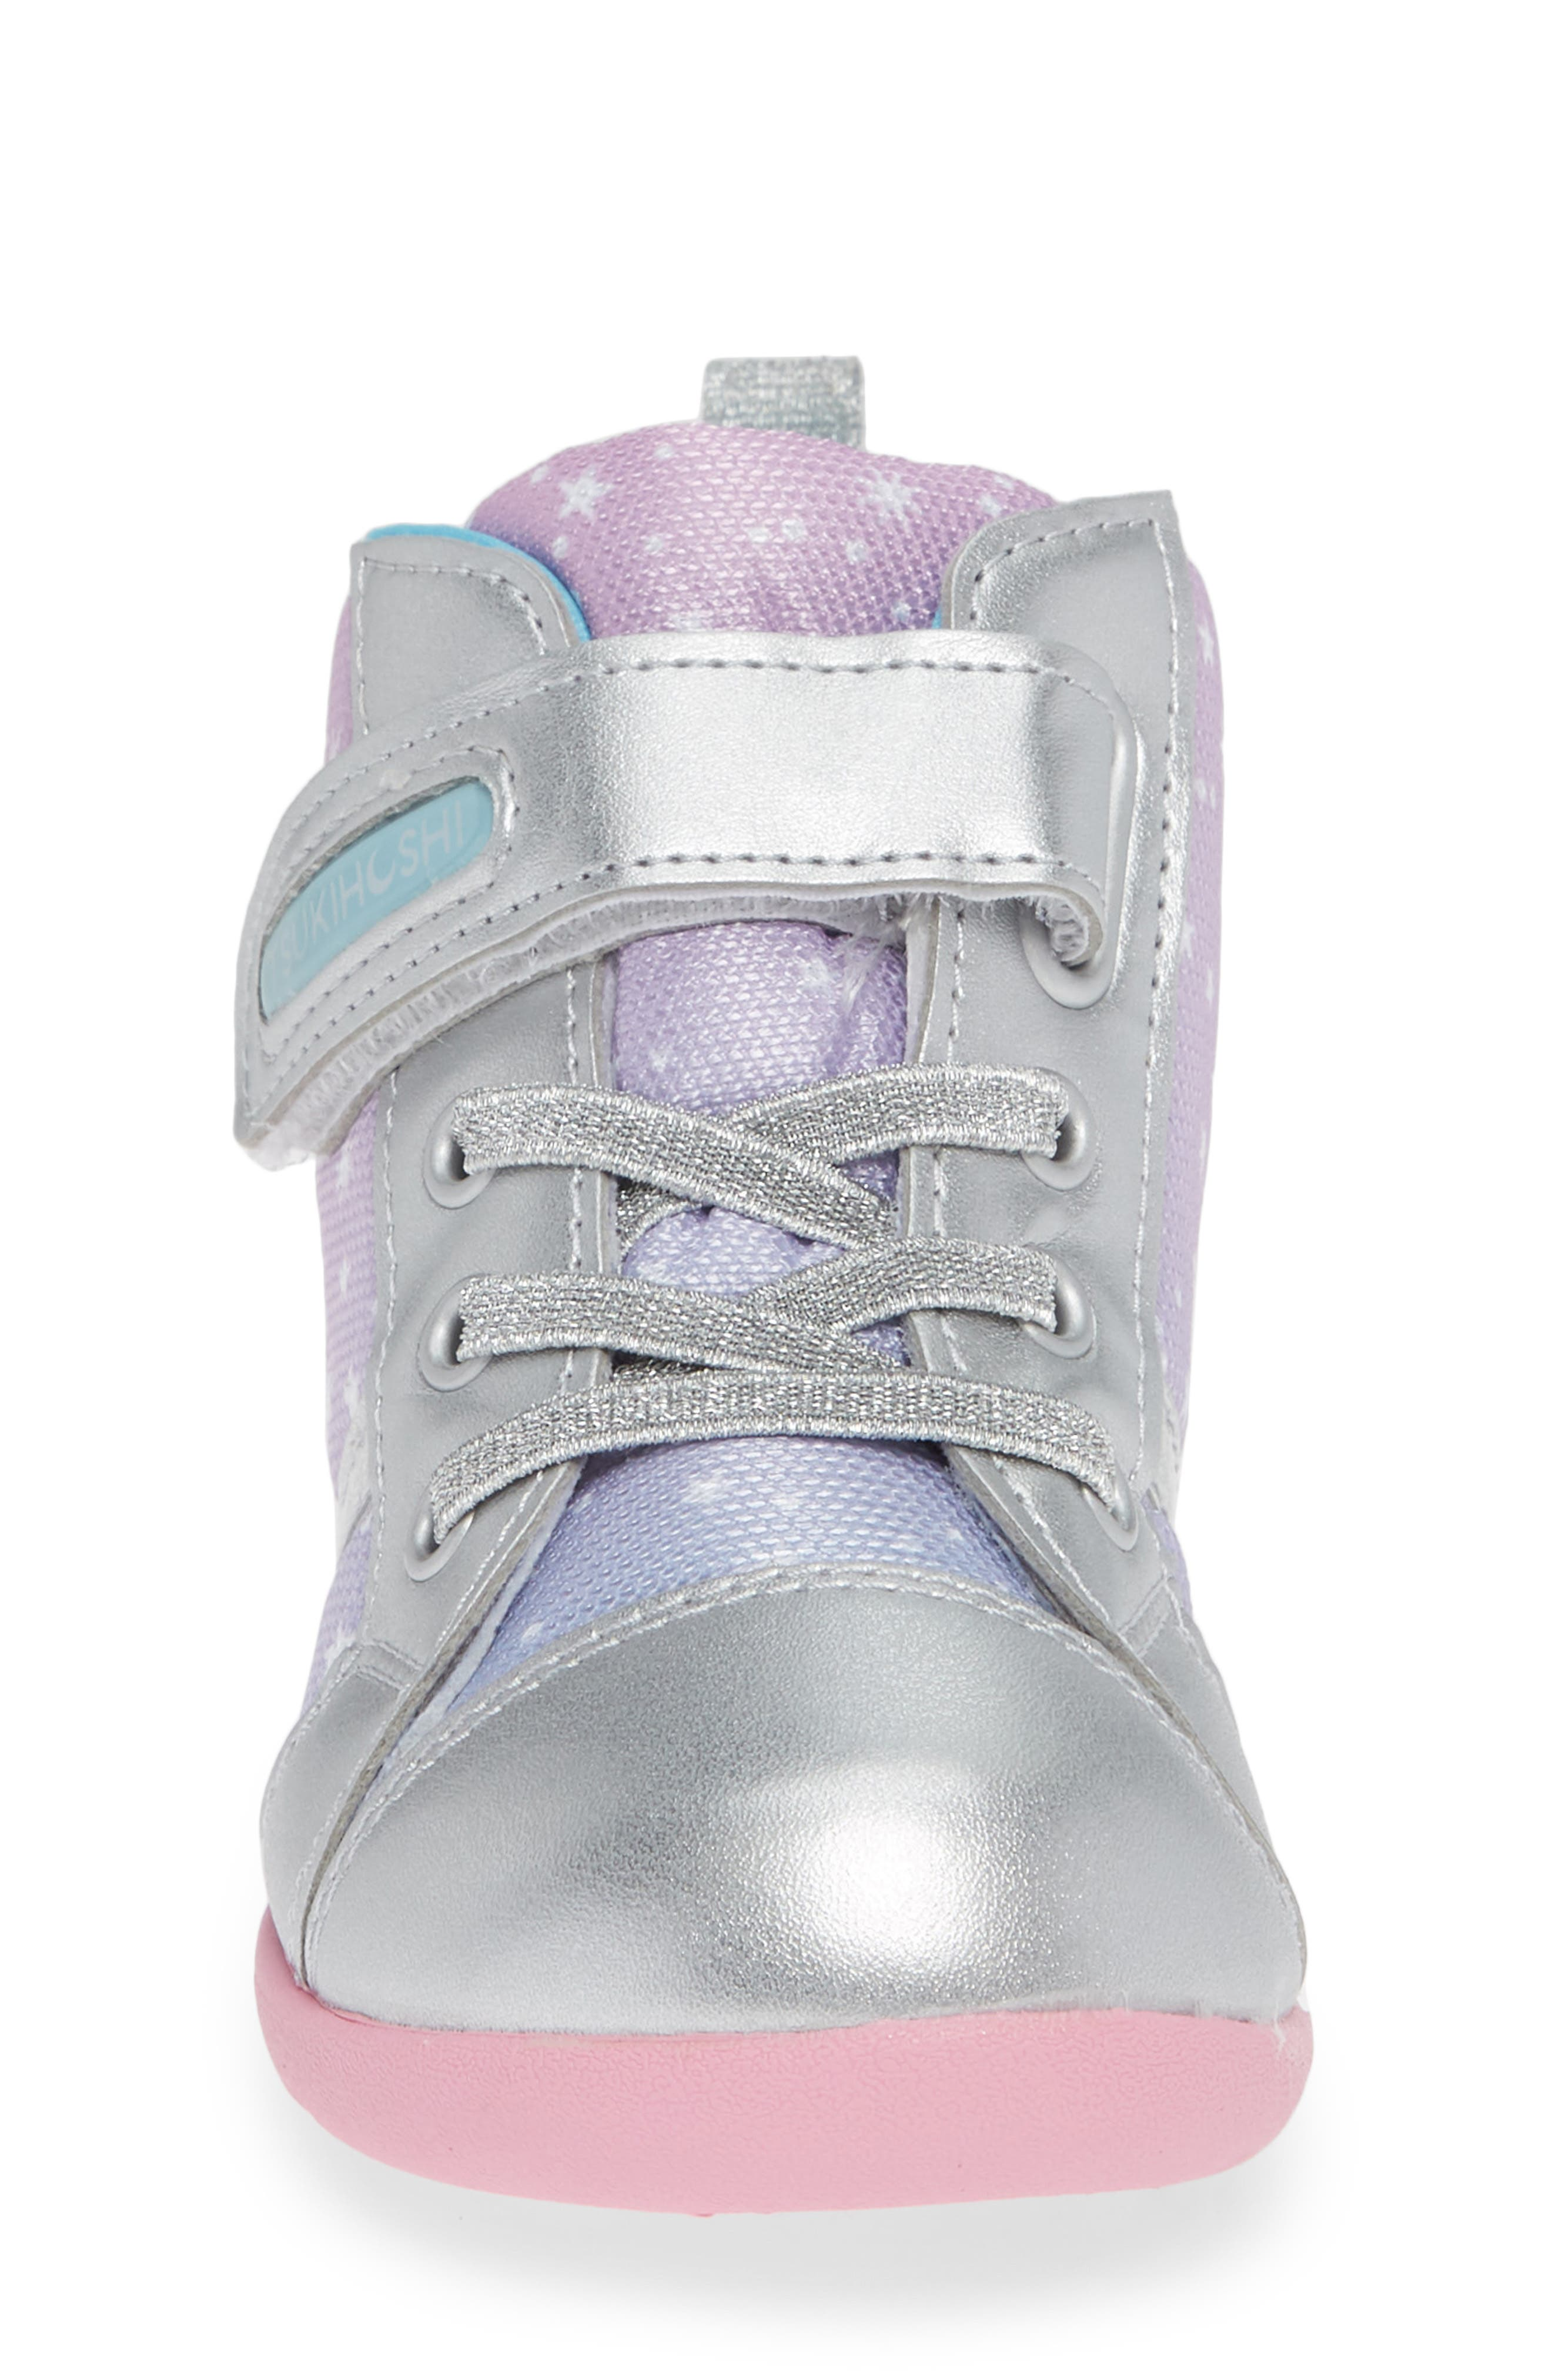 Star Washable Sneaker,                             Alternate thumbnail 4, color,                             SILVER/ PINK